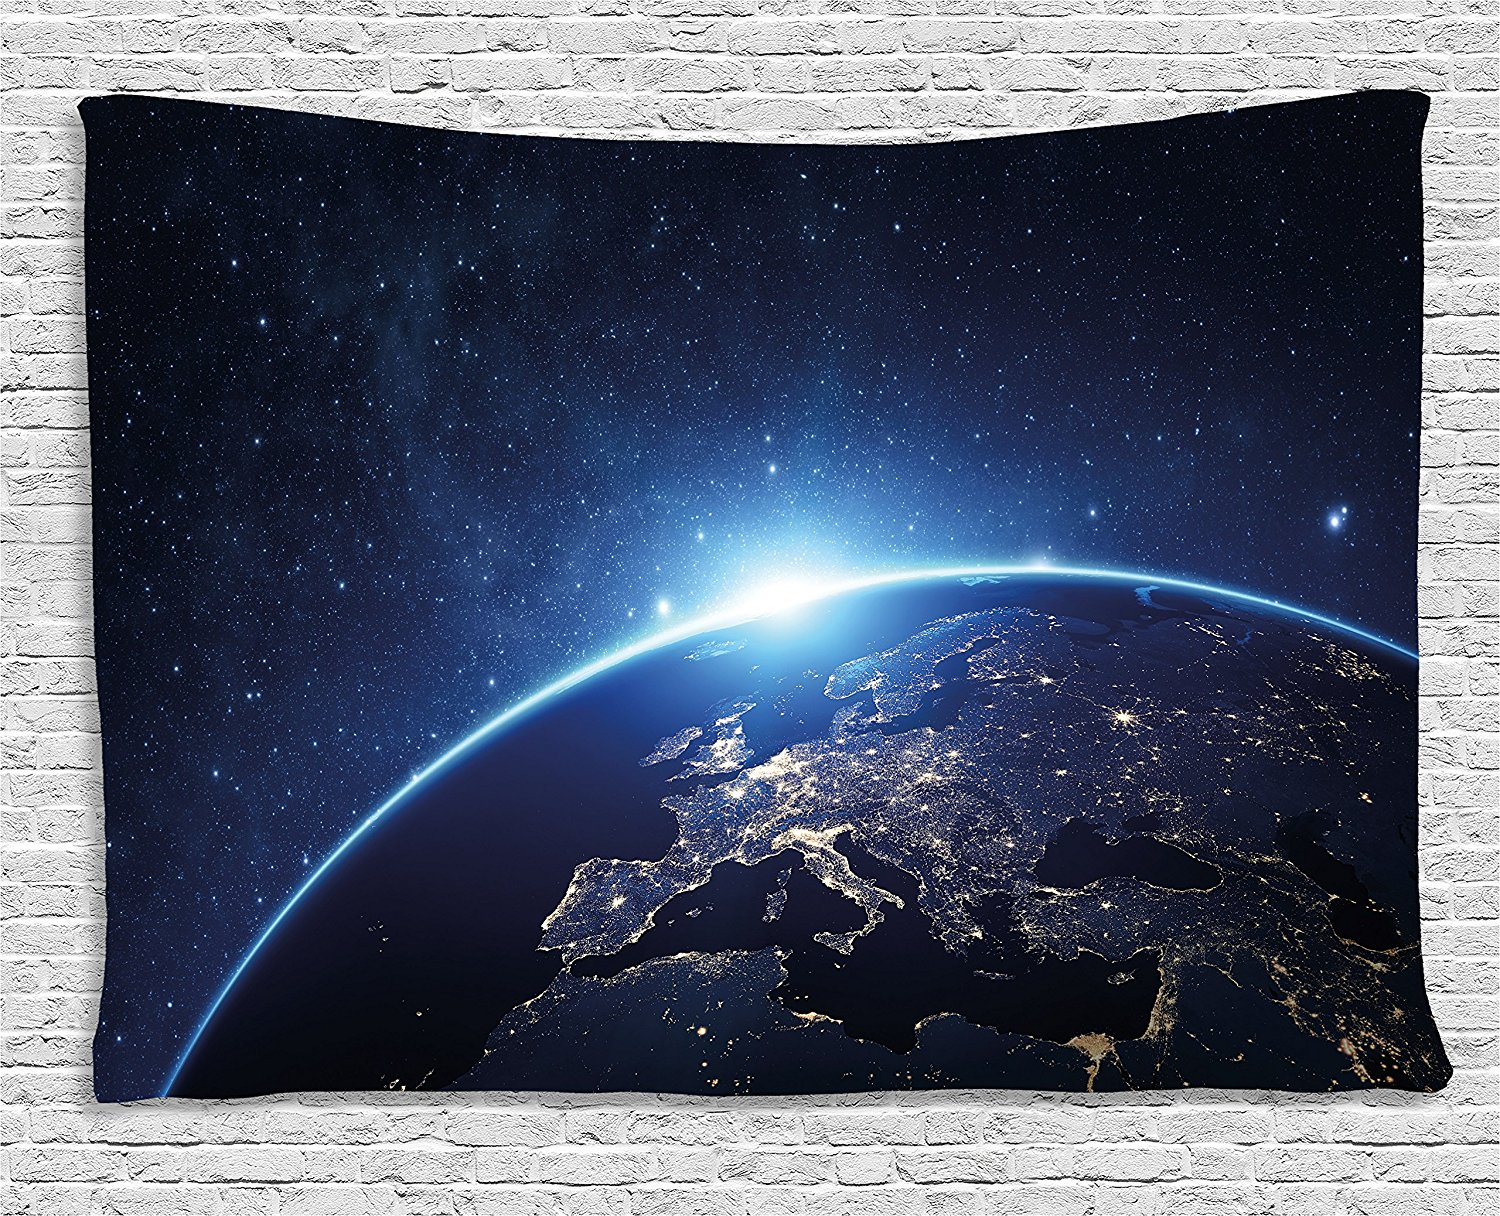 Earth Tapestry Planet From The Space at Night Galactic Astronomy Themed Ethereal Interstellar Image, Wall Hanging for Bedroom